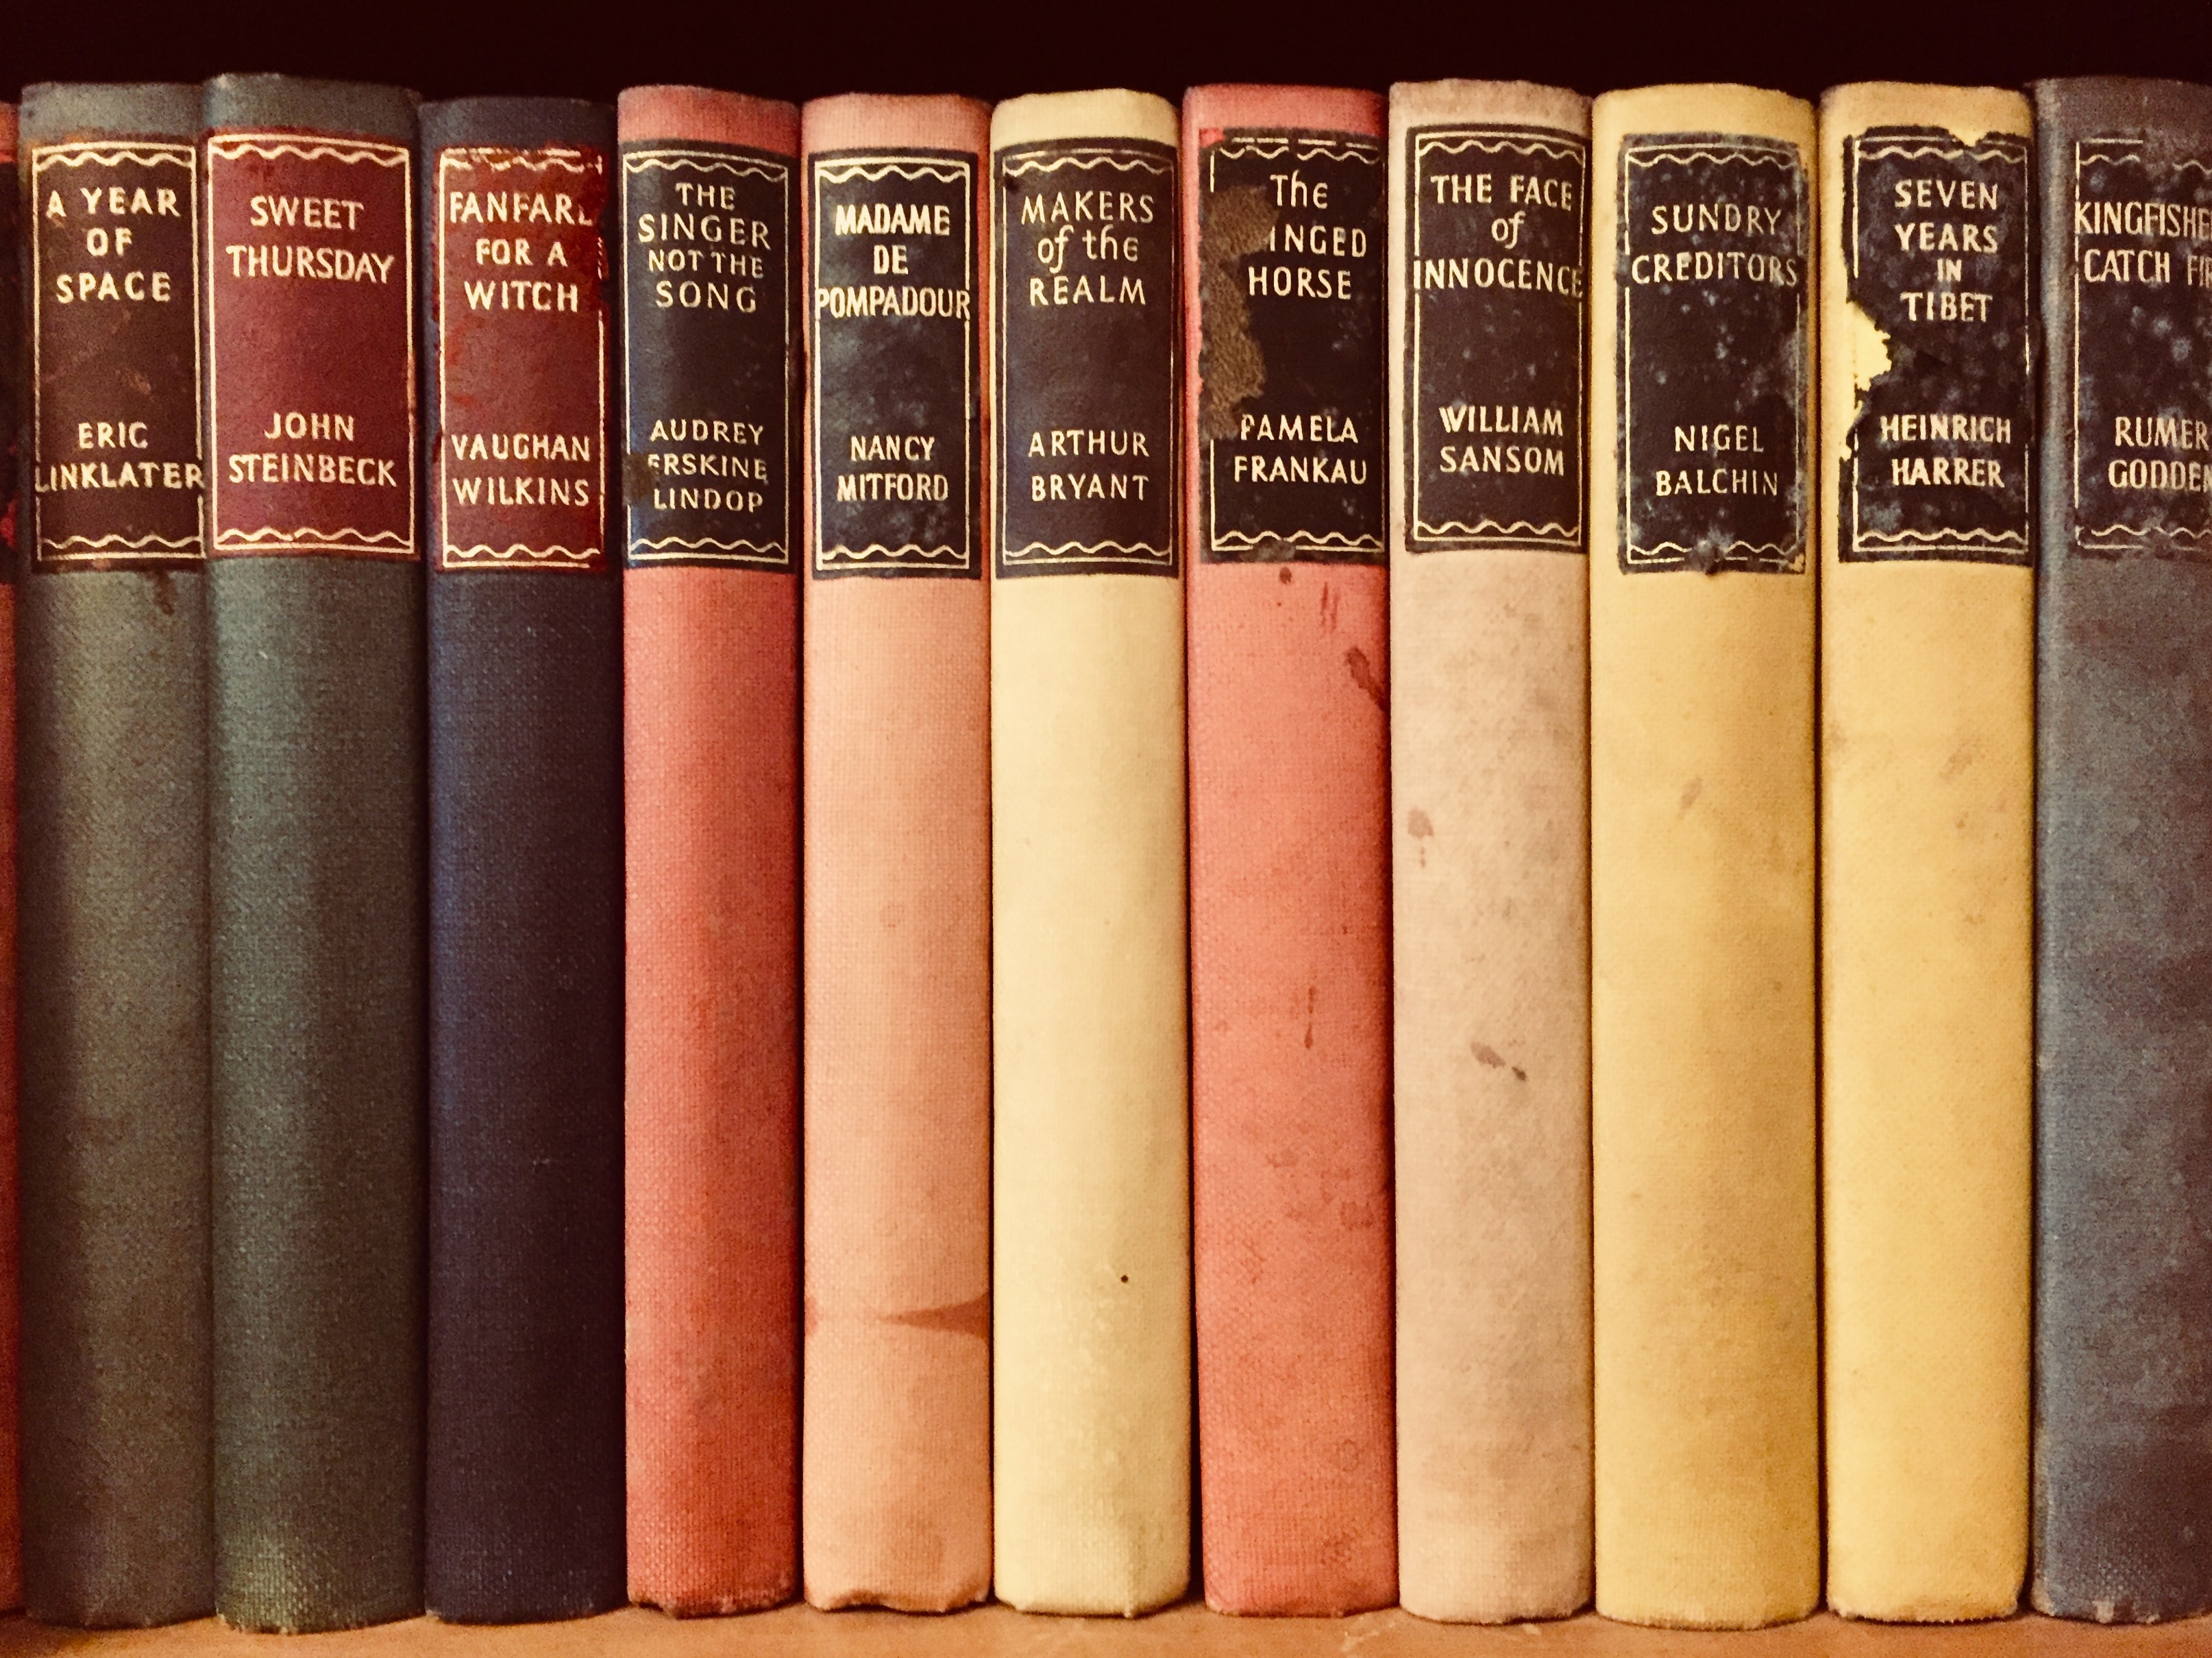 closeup photo of assorted-title books